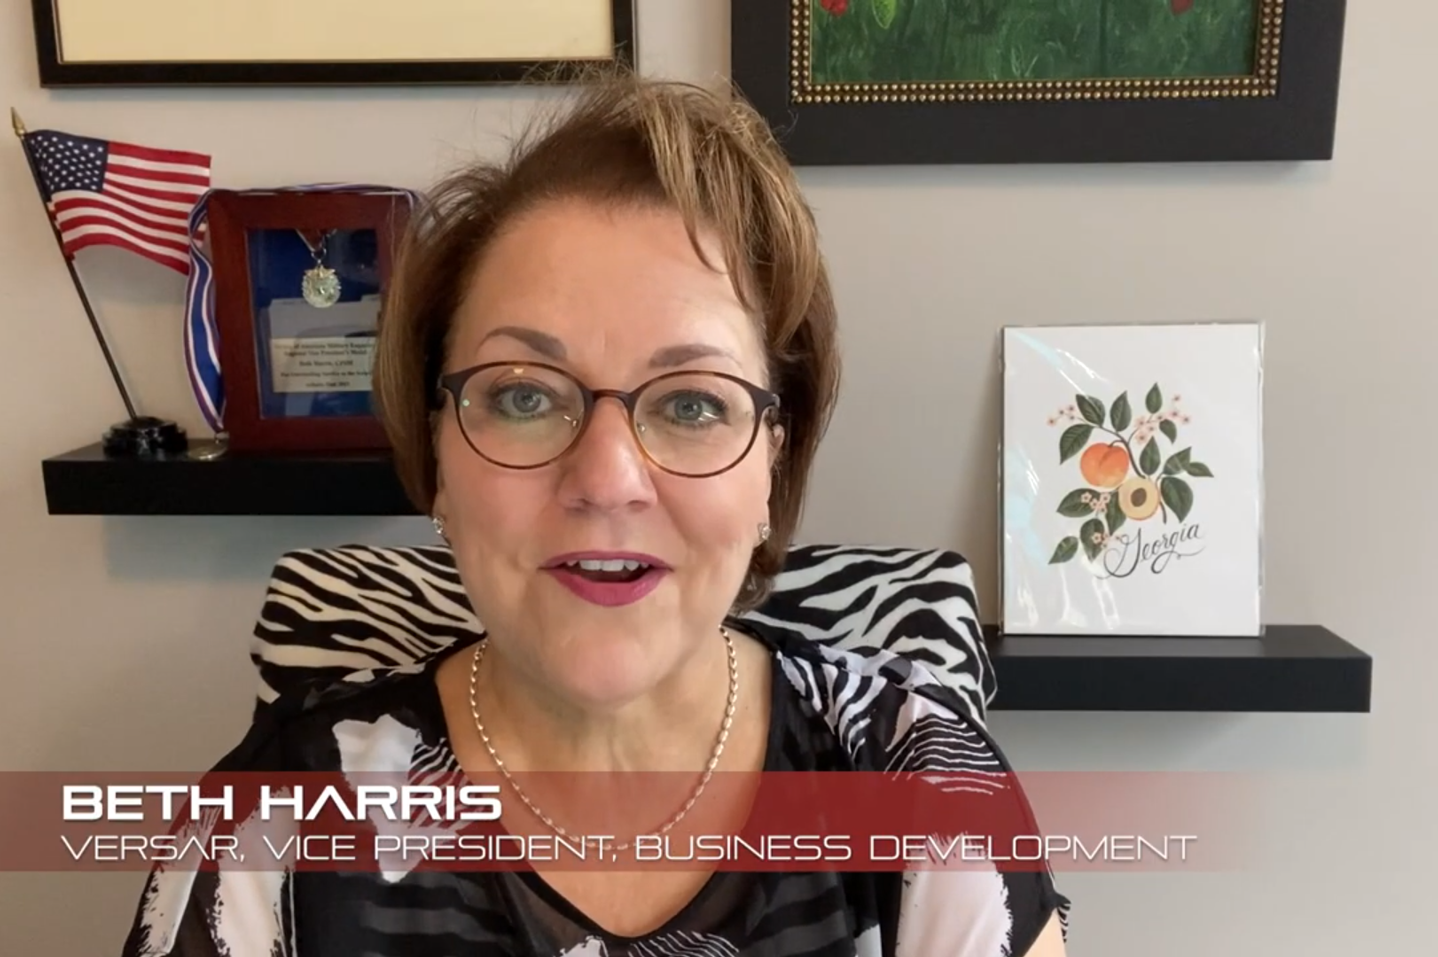 <h3>Beth Harris is ready for SBC!</h3>